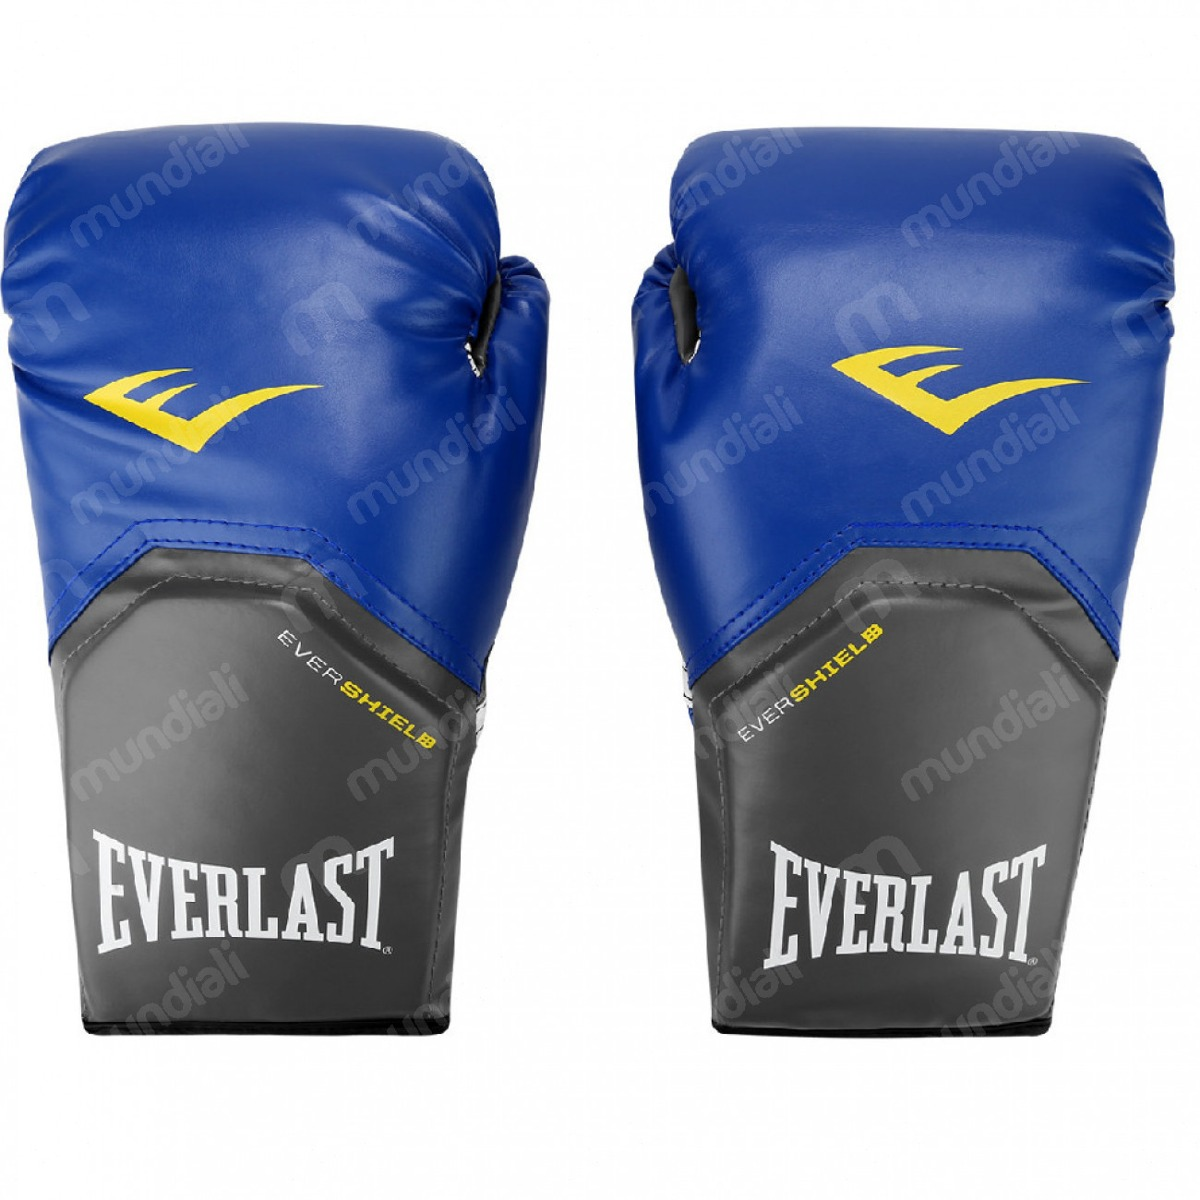 f0529d6c7b luva boxe everlast pro style elite training 12 oz azul. Carregando zoom.